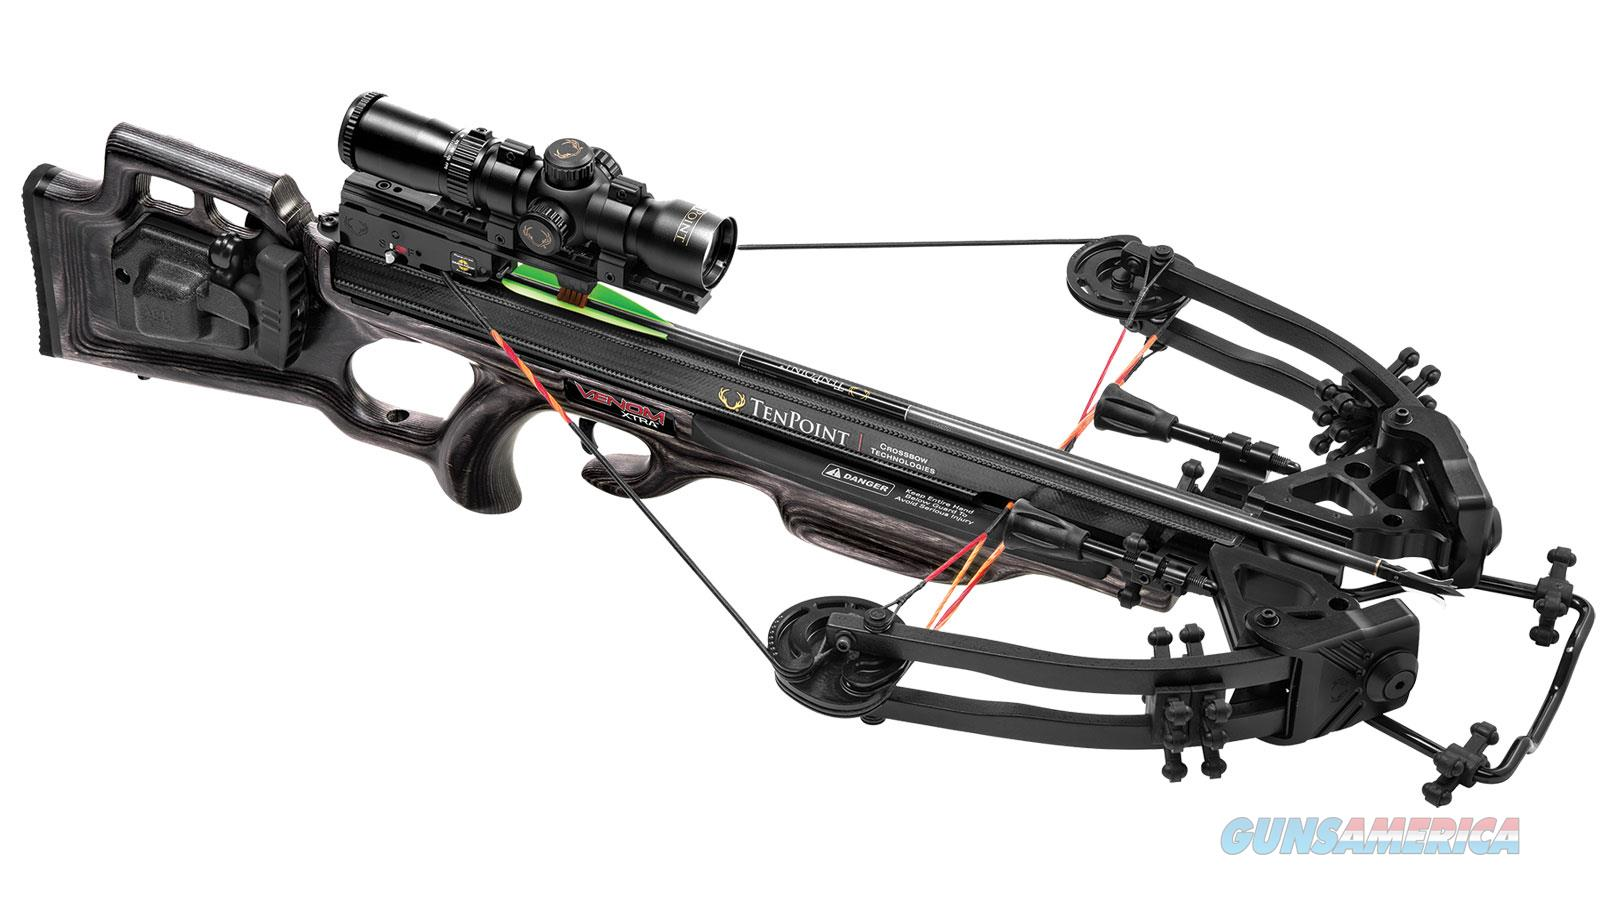 Ten Point Venom Xtra Pkg Range Master CB16001-8411  Non-Guns > Archery > Bows > Crossbows